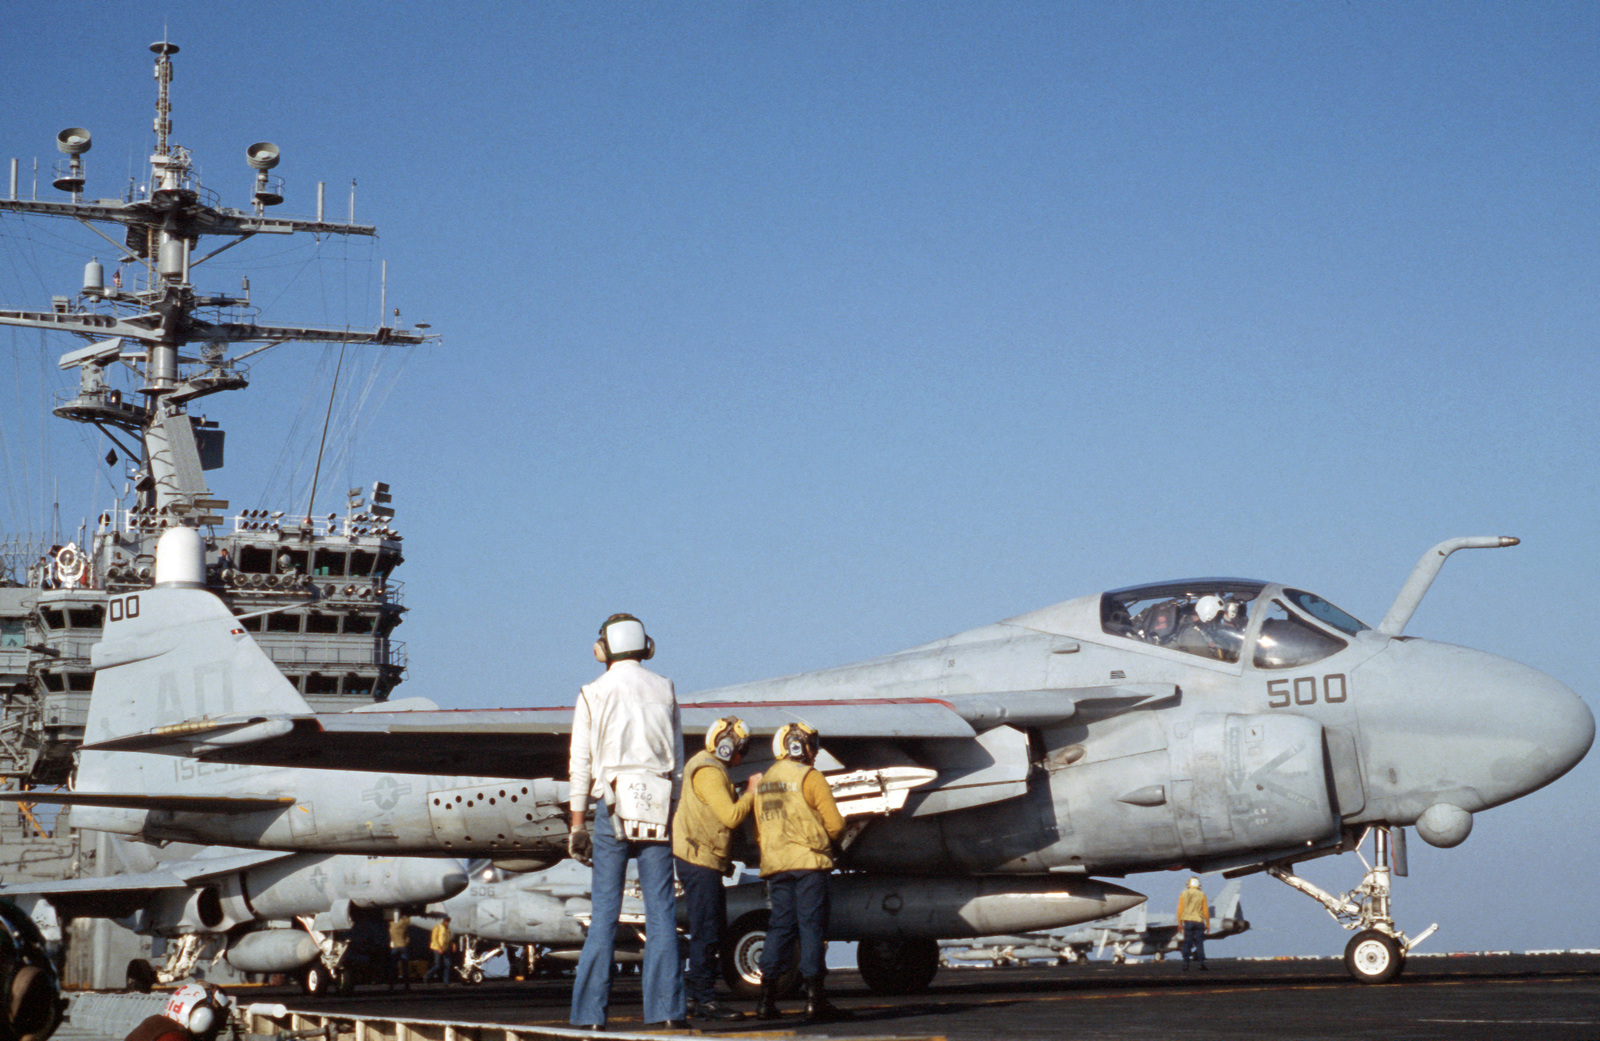 A Strike-Fighter Squadron 111 (VFA-111) A-6E Intruder aircraft is maneuvered into launching position during flight operations aboard the nuclear-powered aircraft carrier USS DWIGHT D. EISENHOWER (CVN 69)